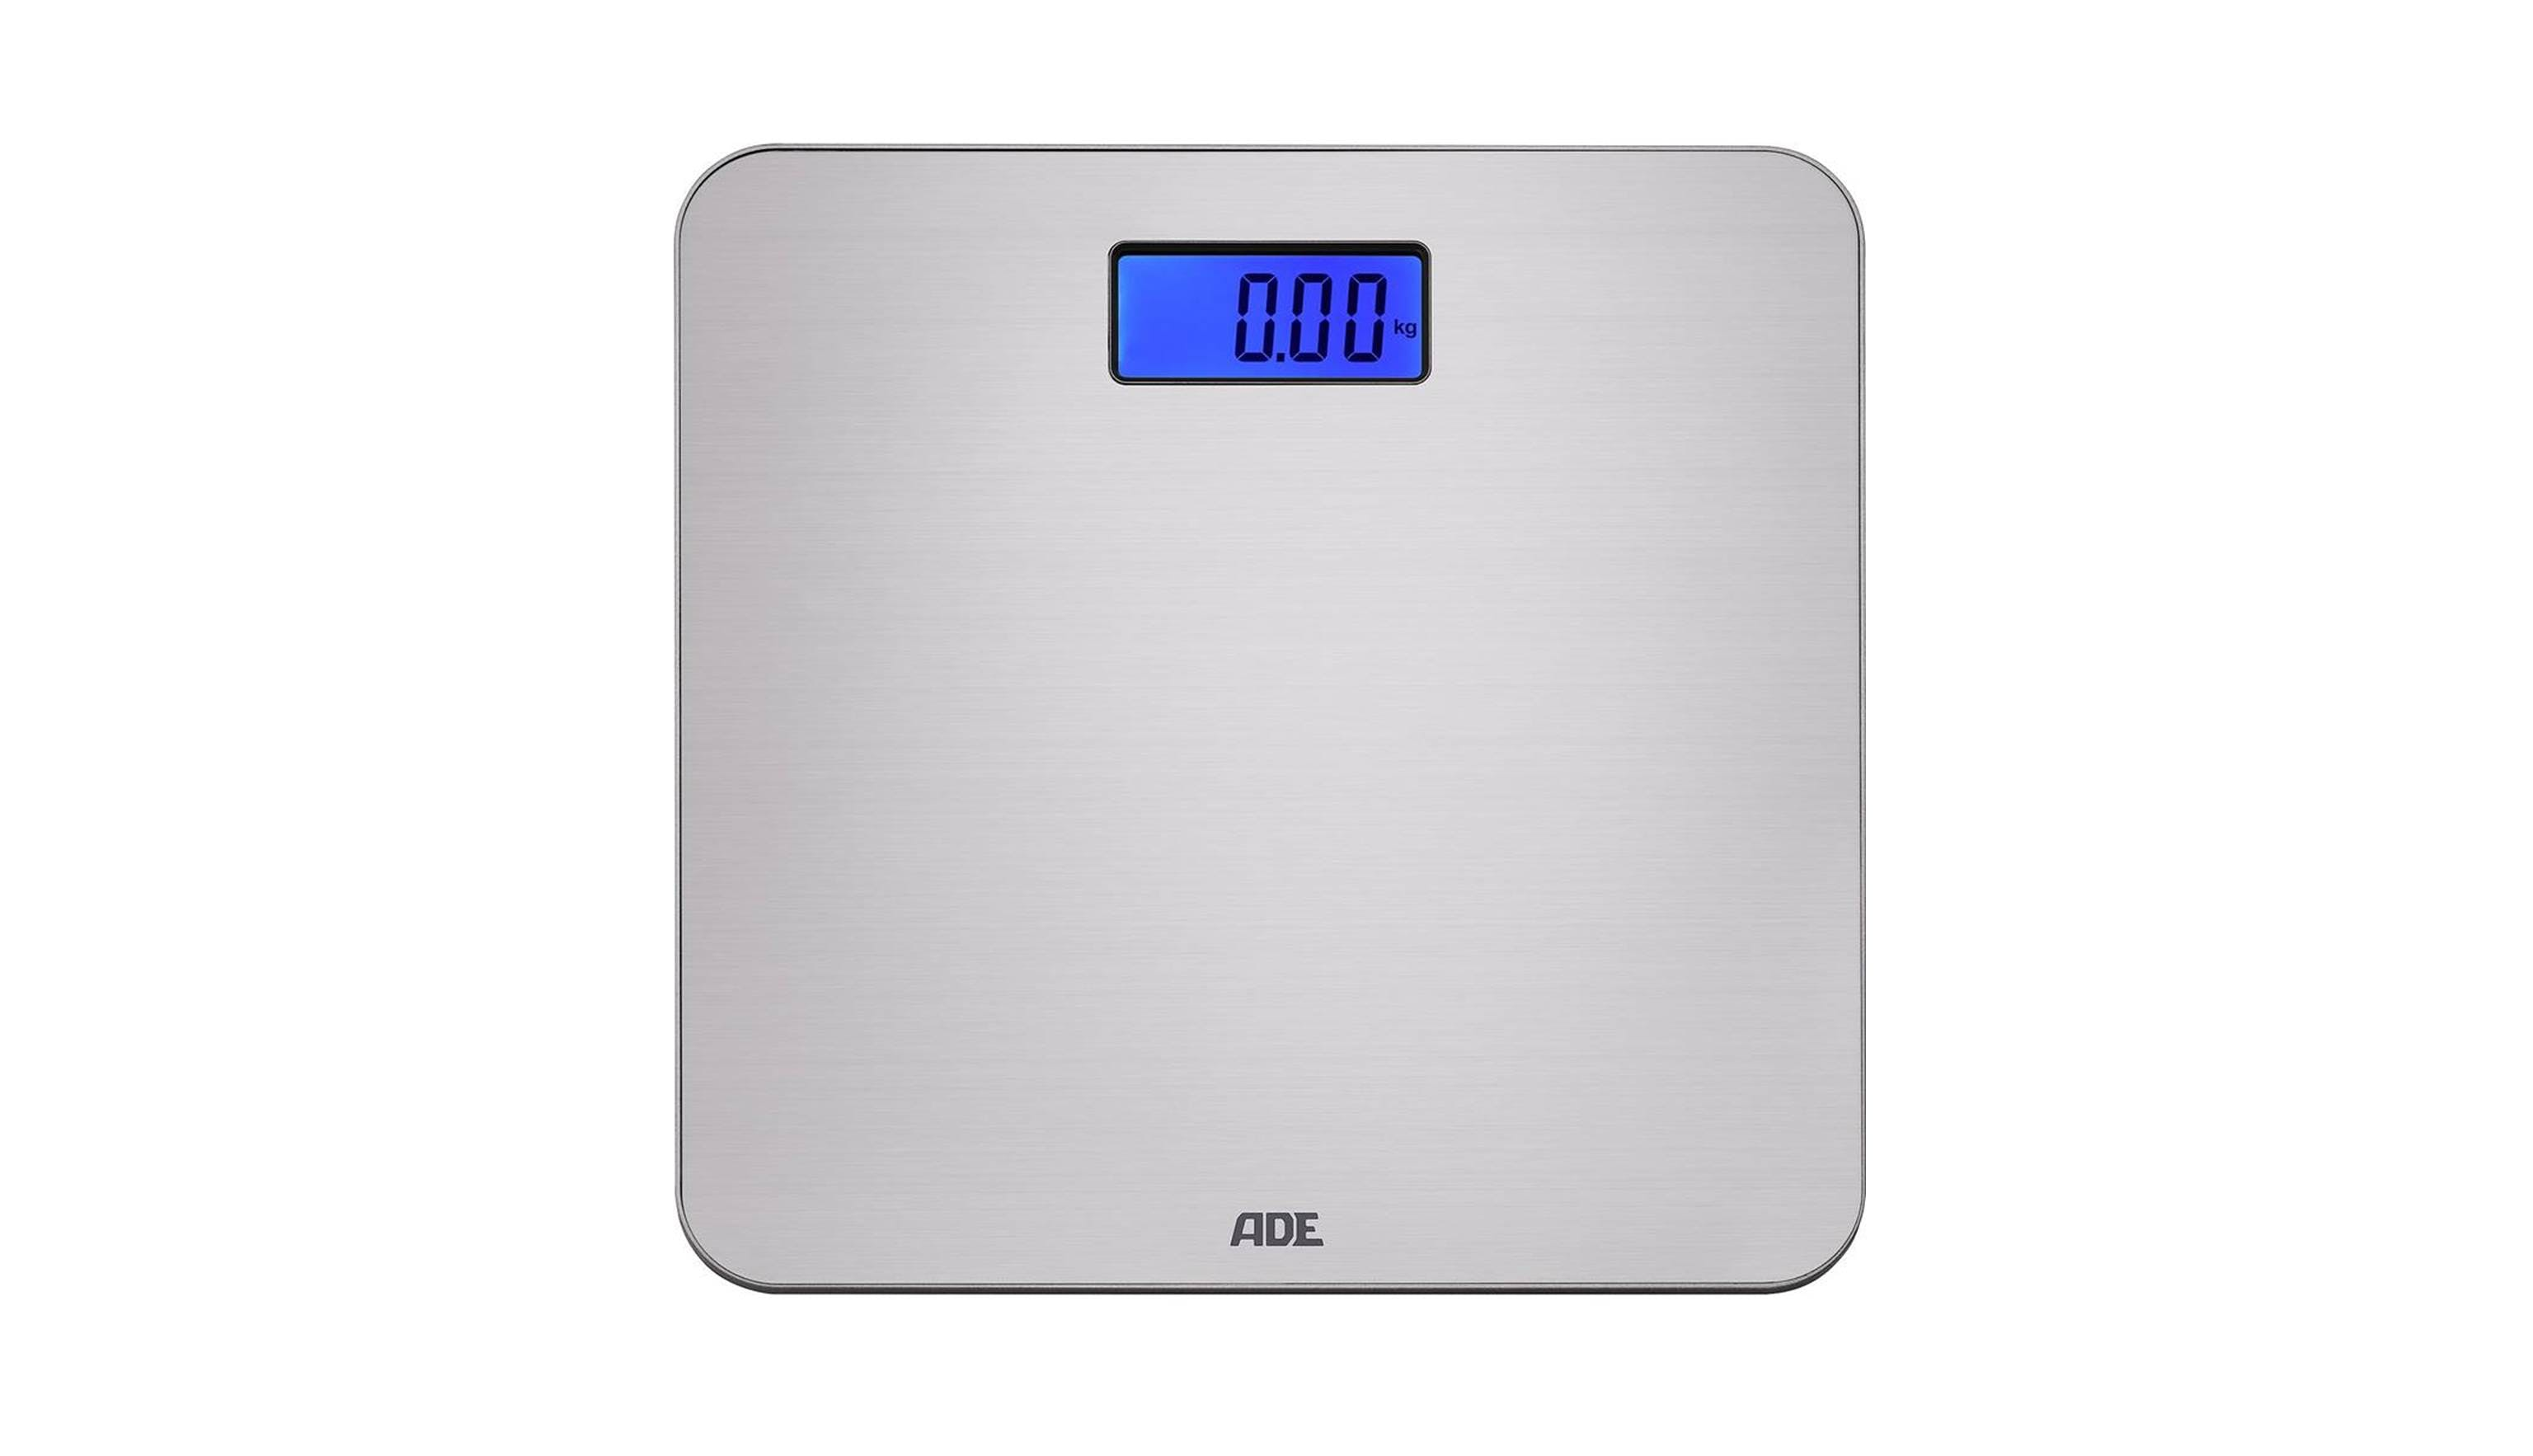 itm scales body kg glass display bathroom electronic weighing digital lcd scale